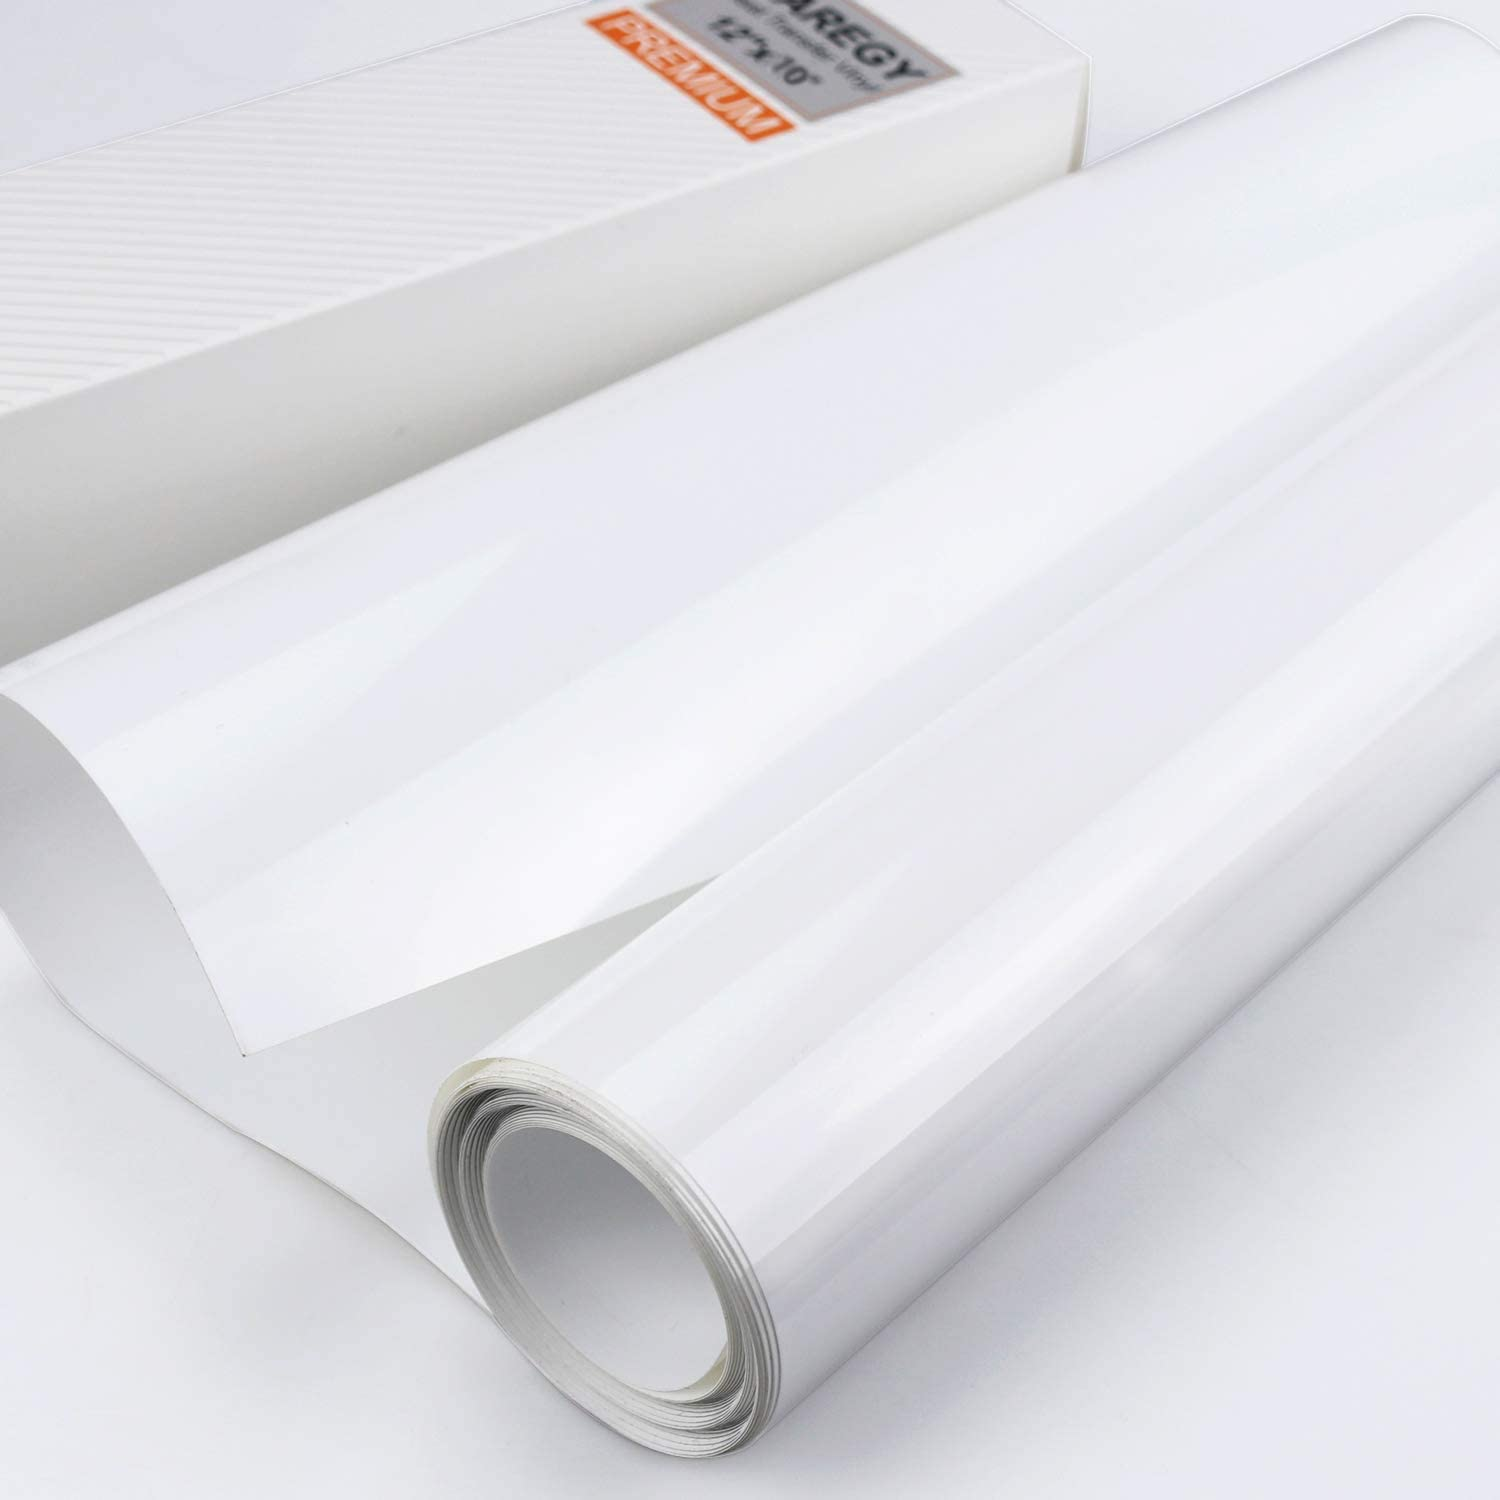 White 1 Roll Heat Transfer Vinyl Outee 12 Inch by 10 Ft Iron On HTV for T-Shirts